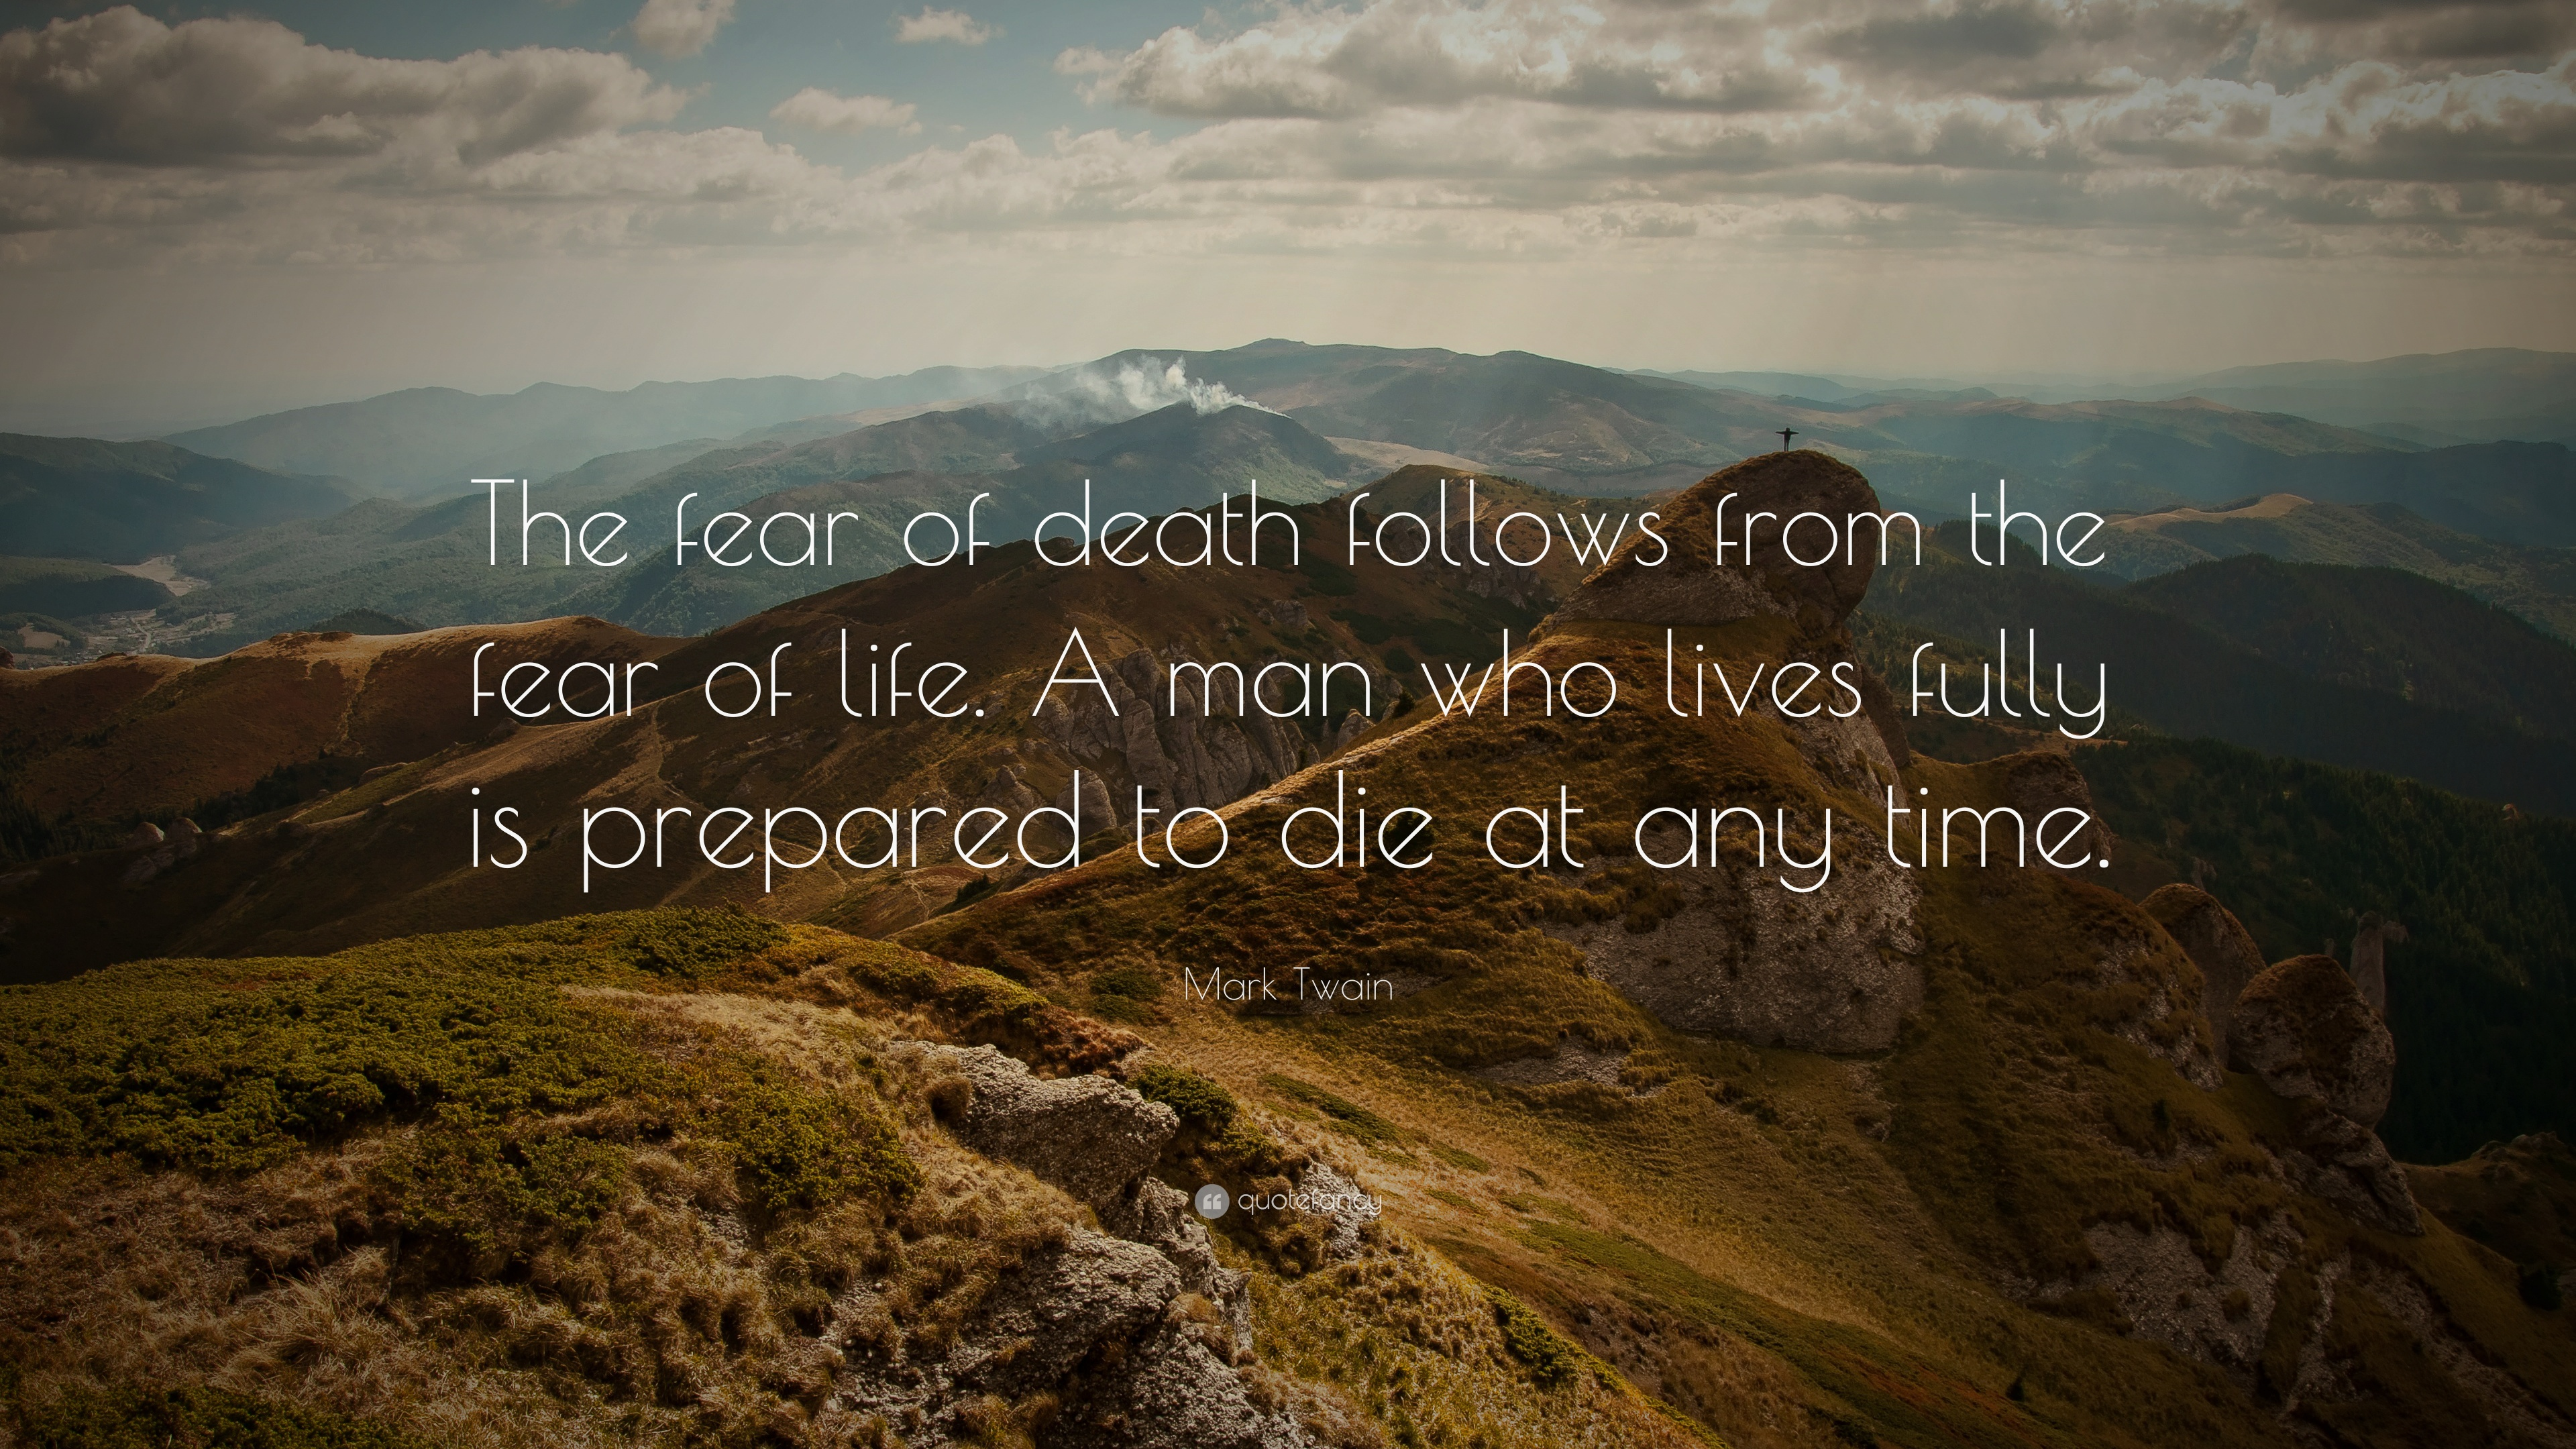 Mark Twain Quotes About Life and Death